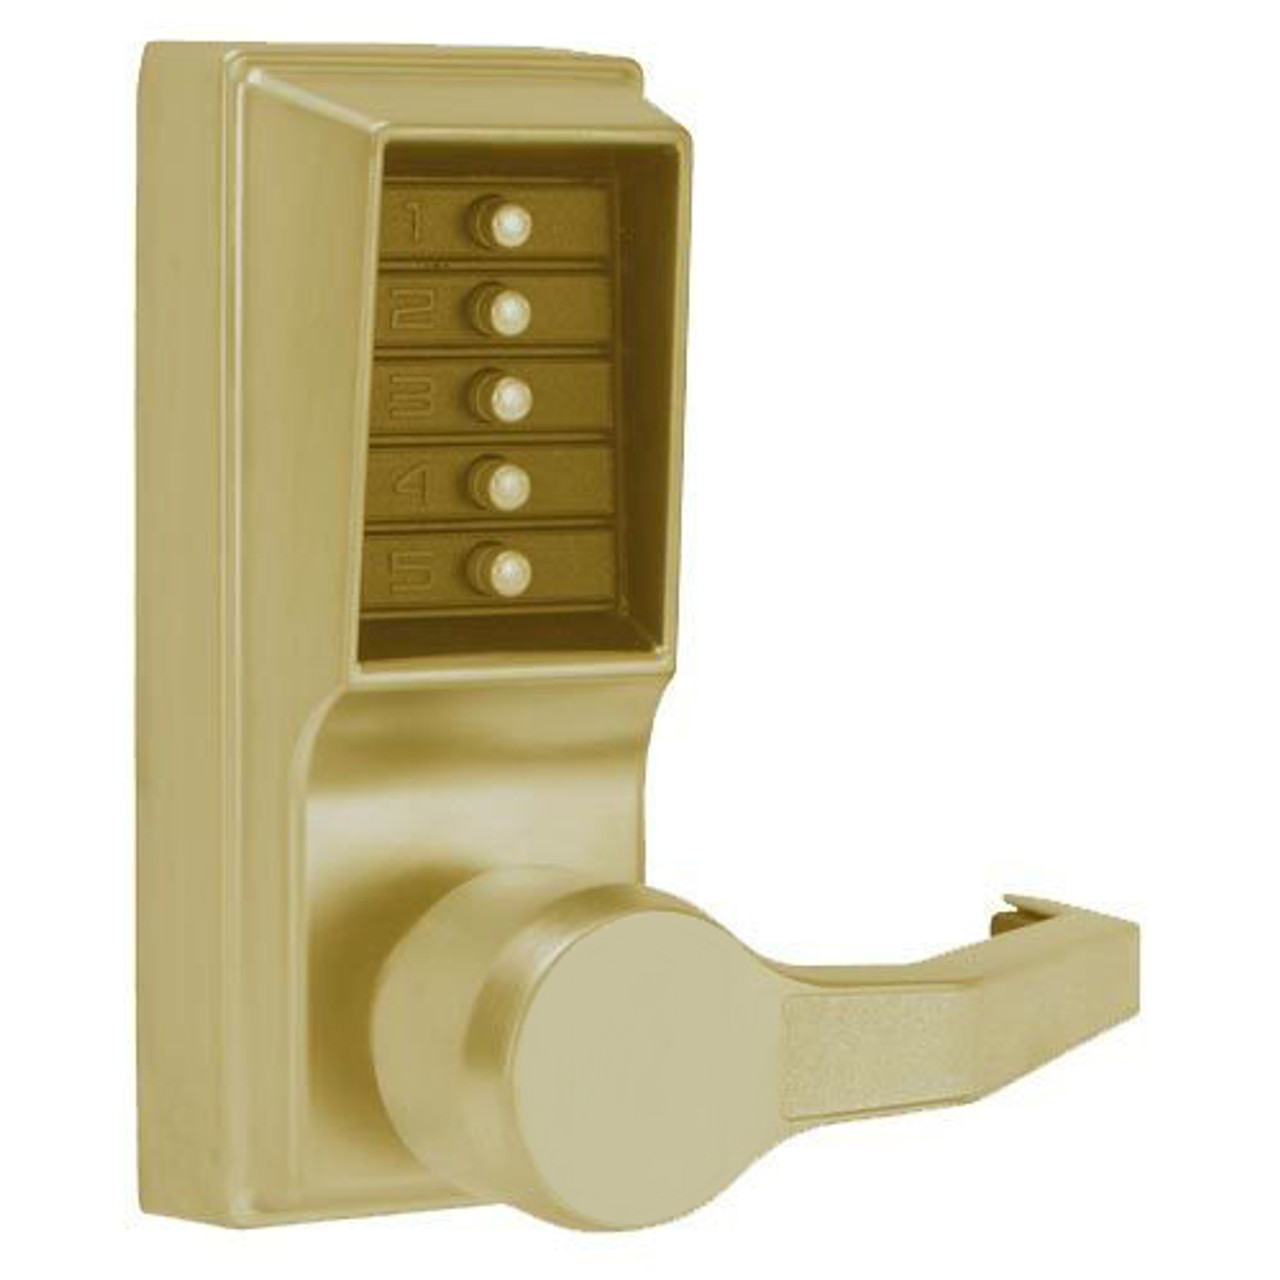 LR1032-05-41 Simplex Pushbutton Lever Lock with No Key Override in Antique Brass